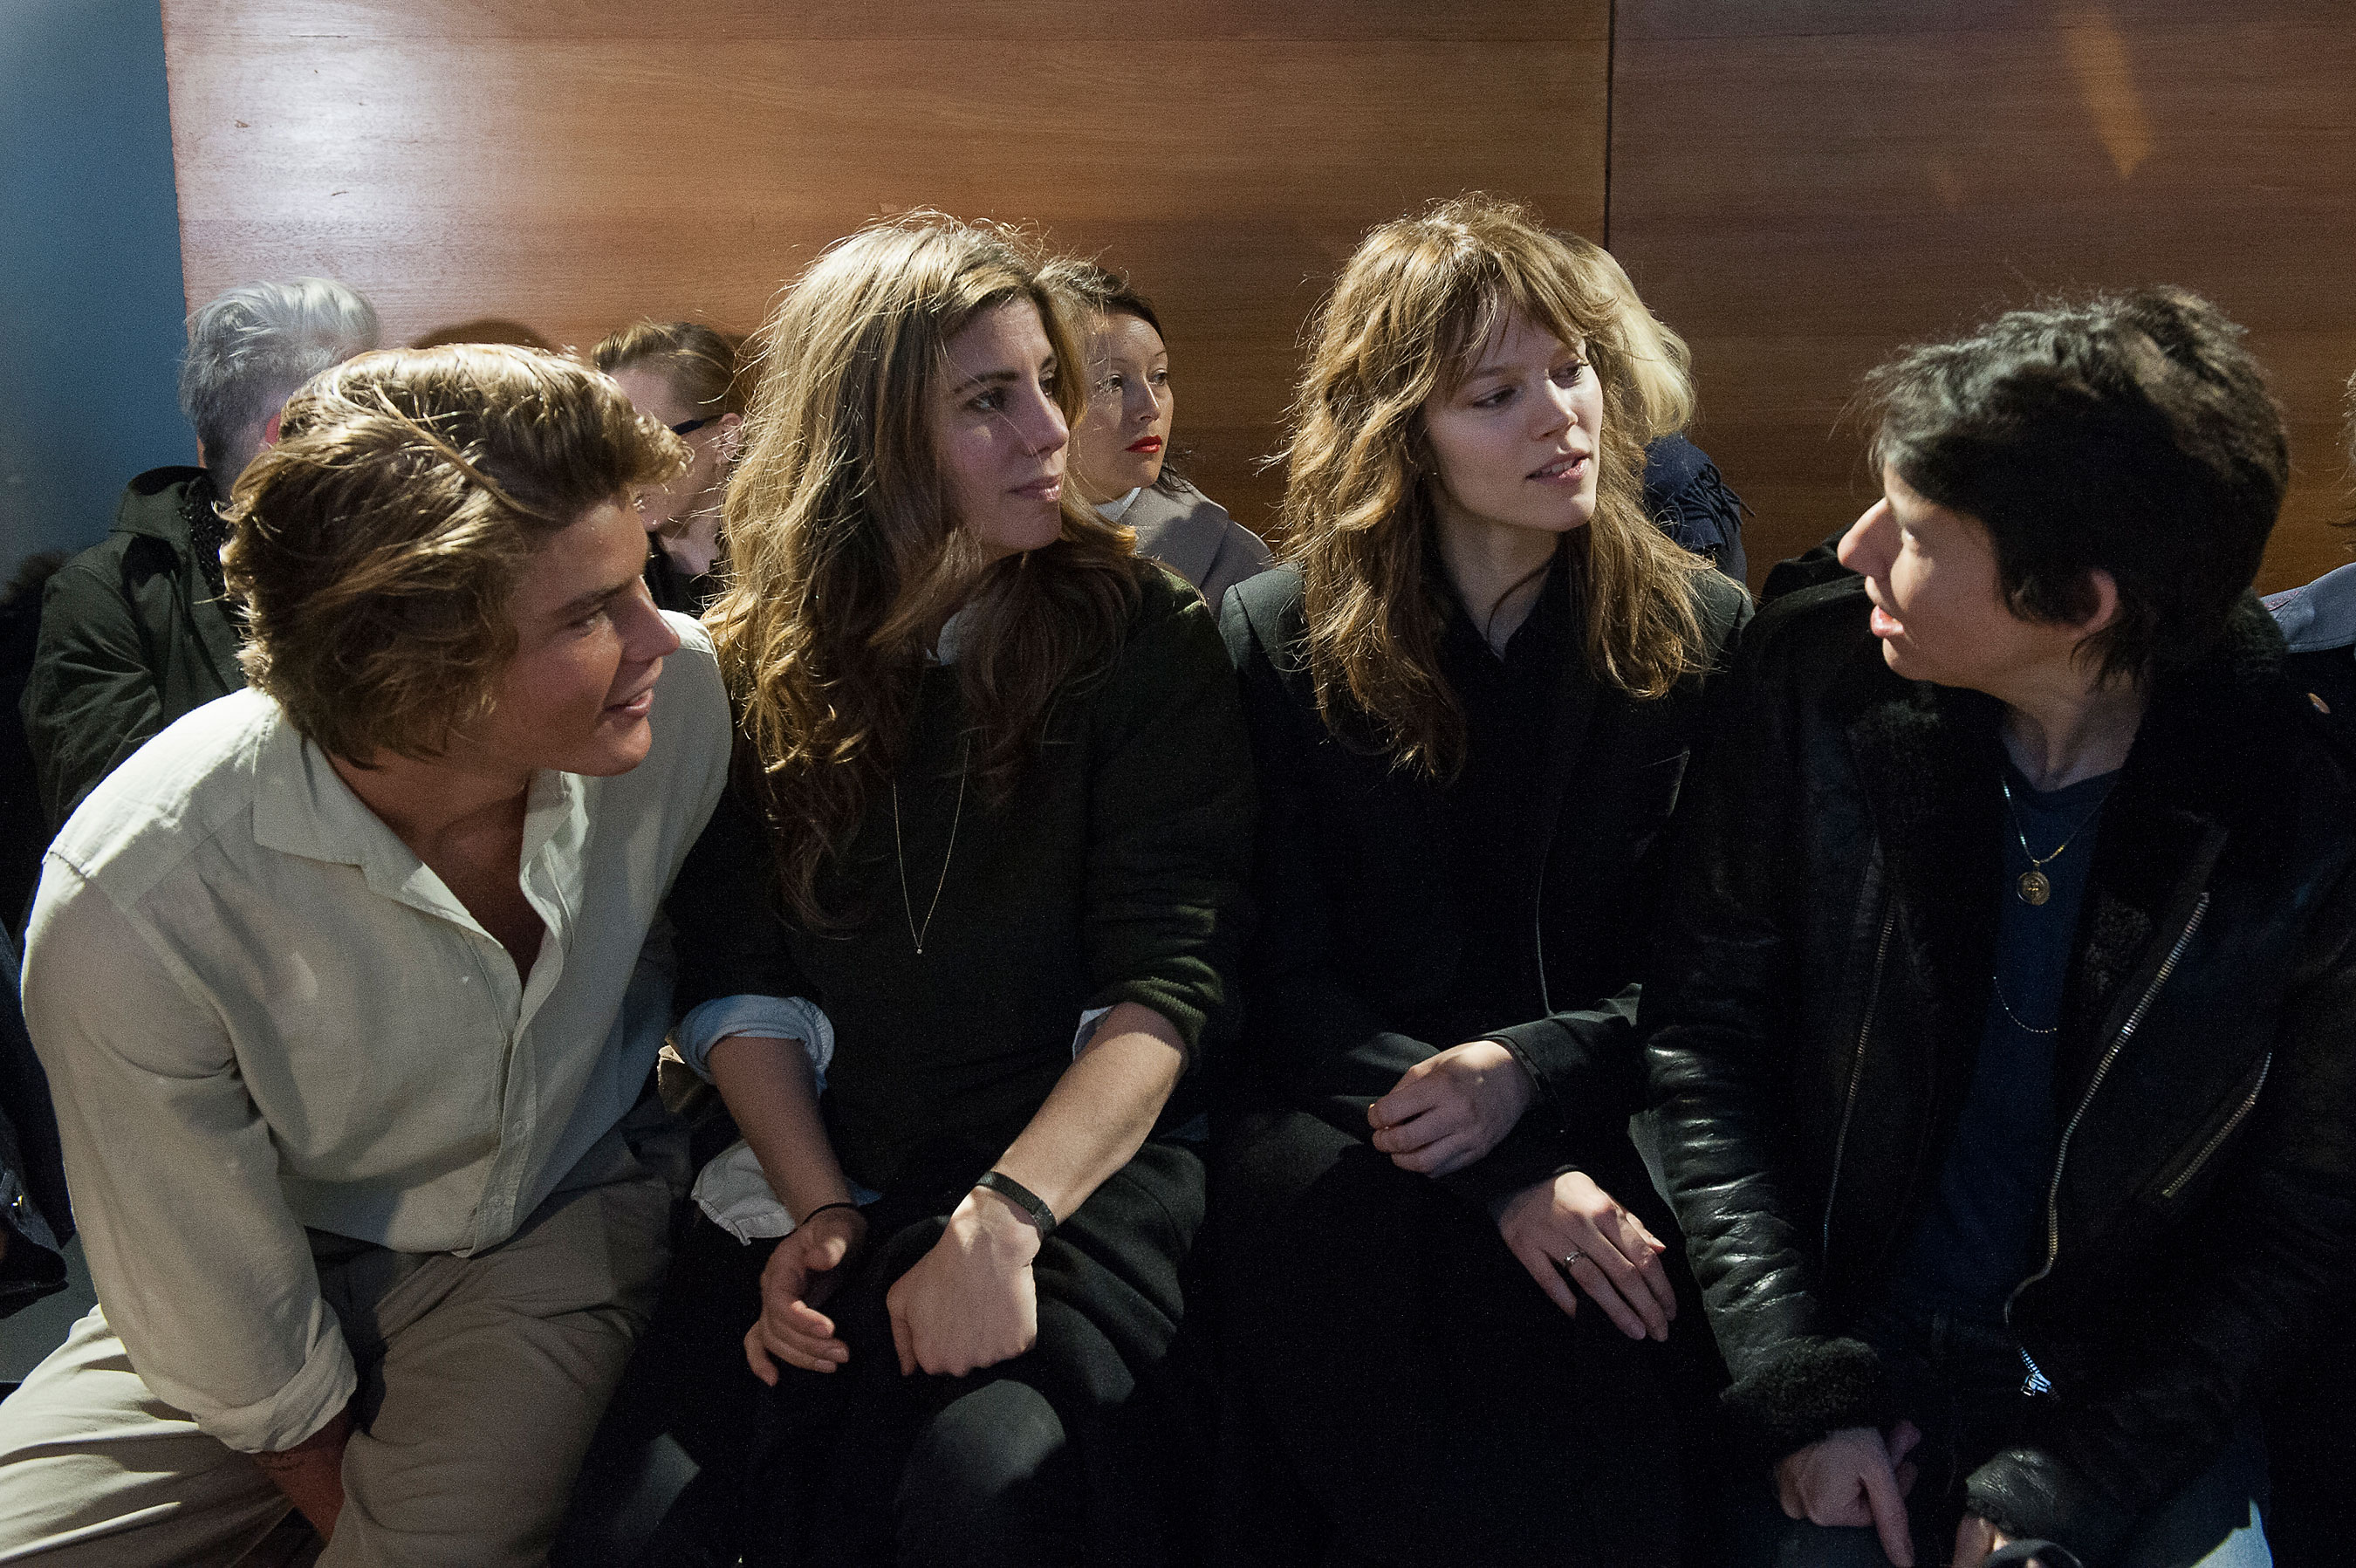 Jordan Barrett & Freja Beha Erichsen at Anthony Vaccarello